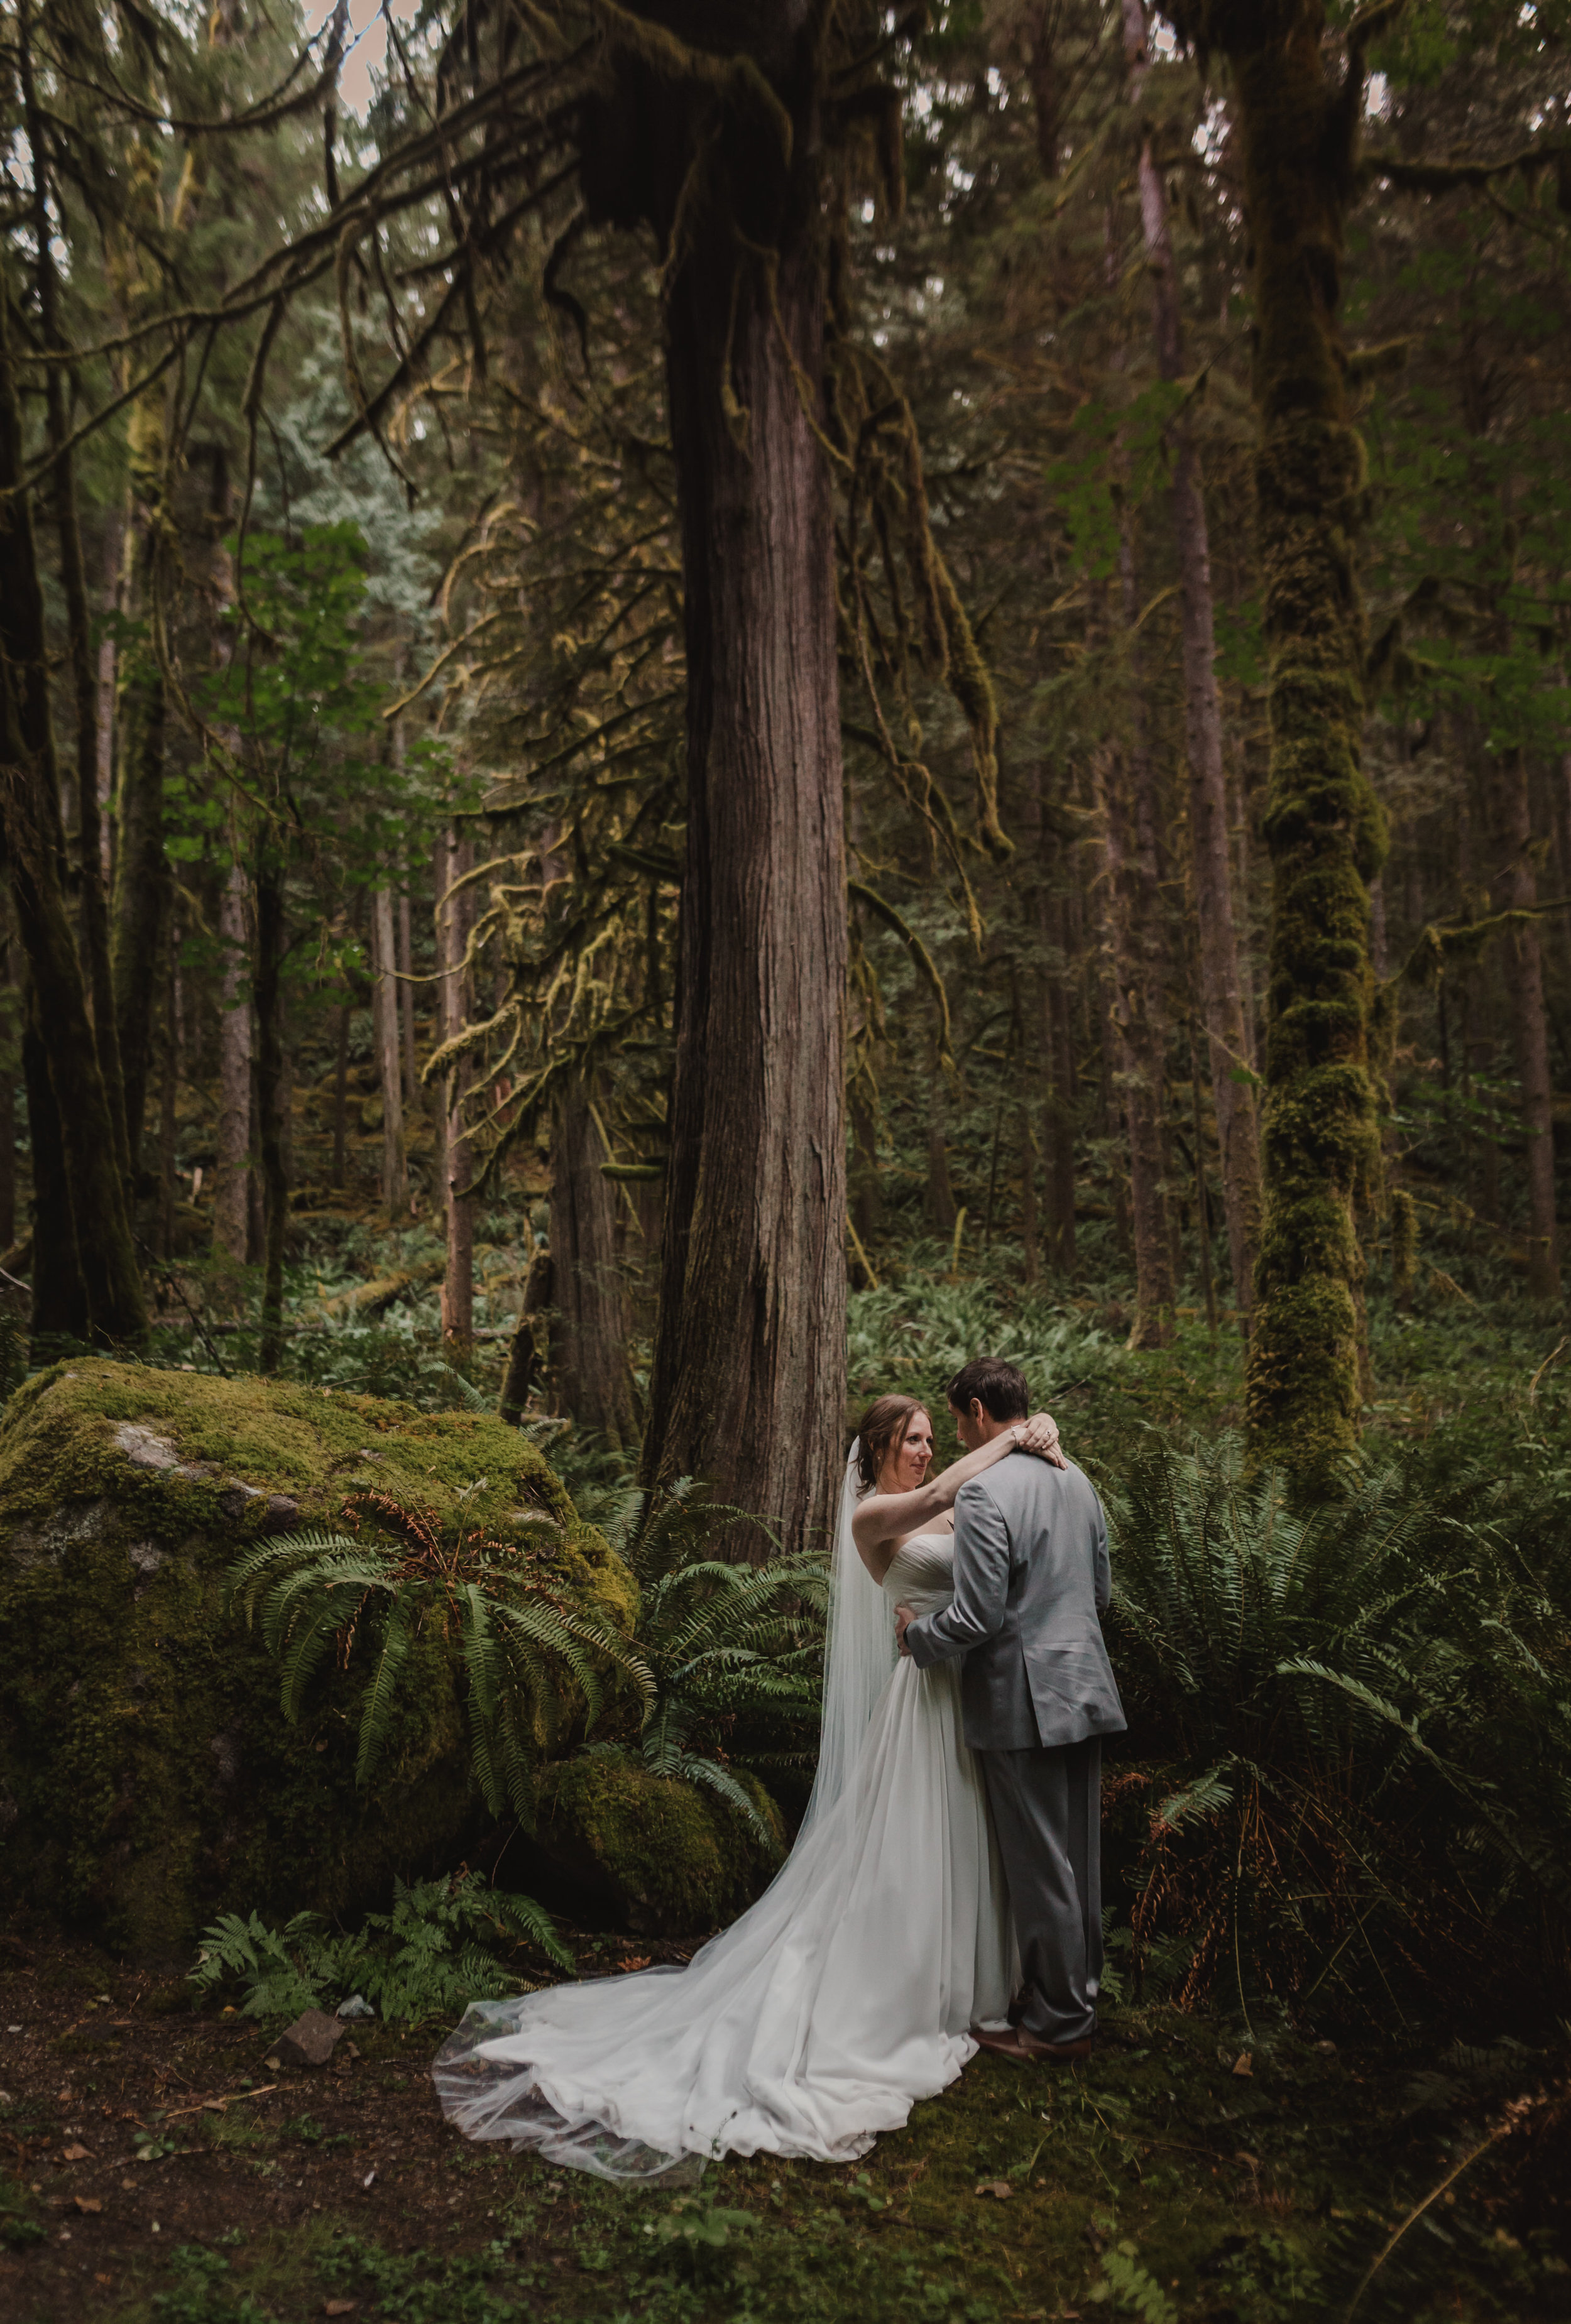 West Coast Wilderness Lodge Wedding Photos - Vancouver Wedding Photographer & Videographer - Sunshine Coast Wedding Photos - Sunshine Coast Wedding Photographer - Jennifer Picard Photography - IMG_7133.jpg